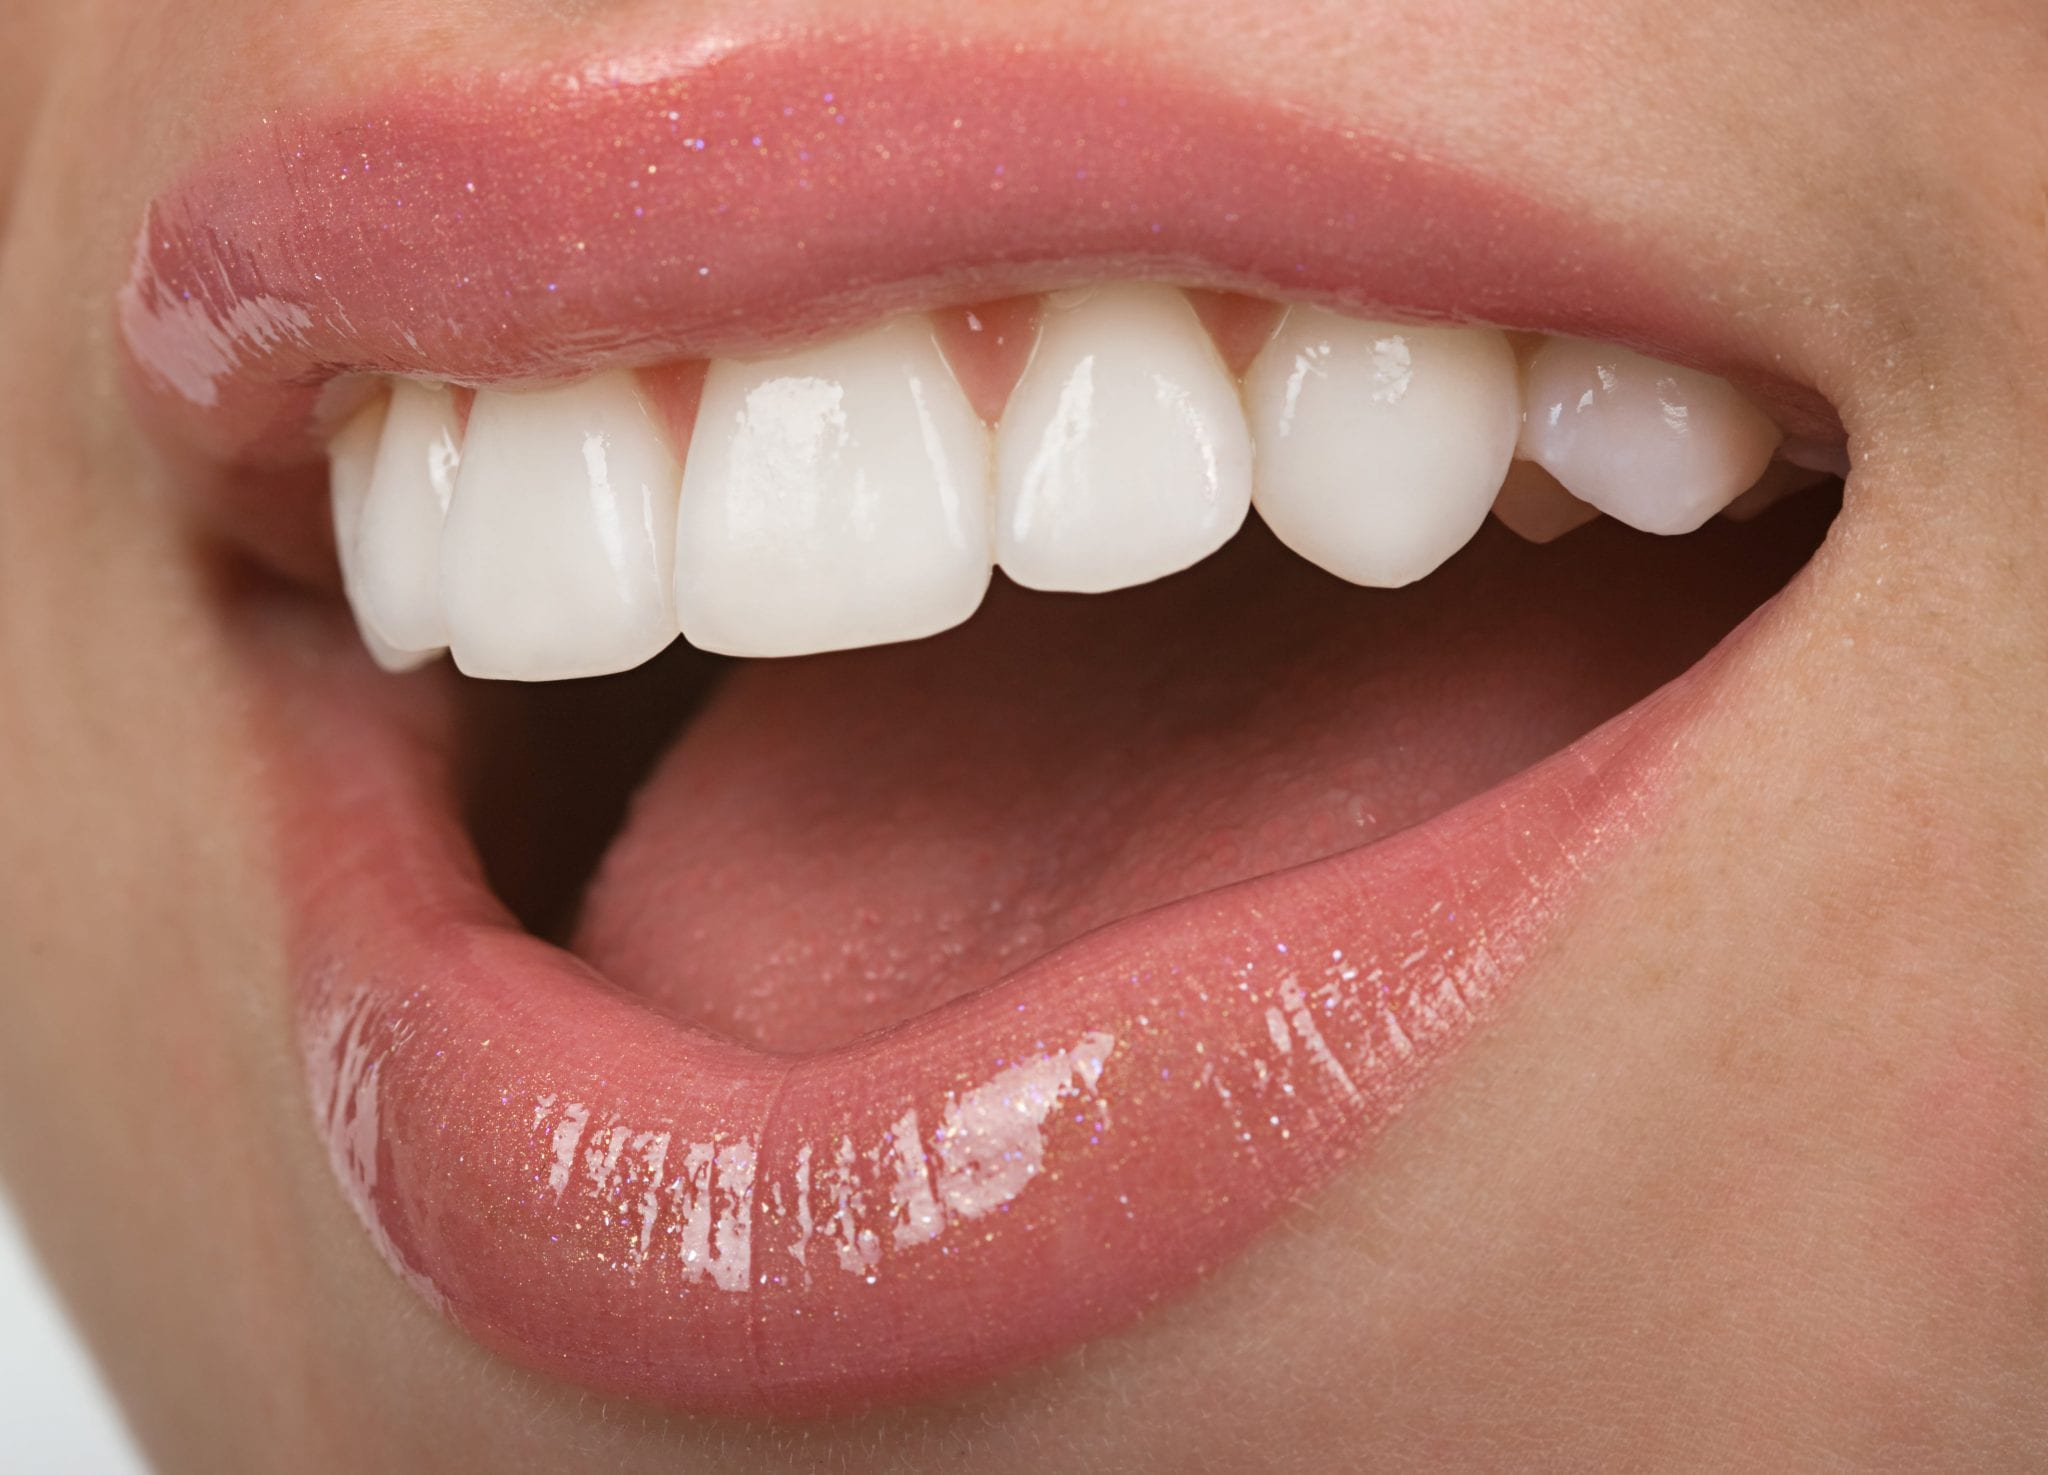 Healthy teen mouth with beautiful white teeth